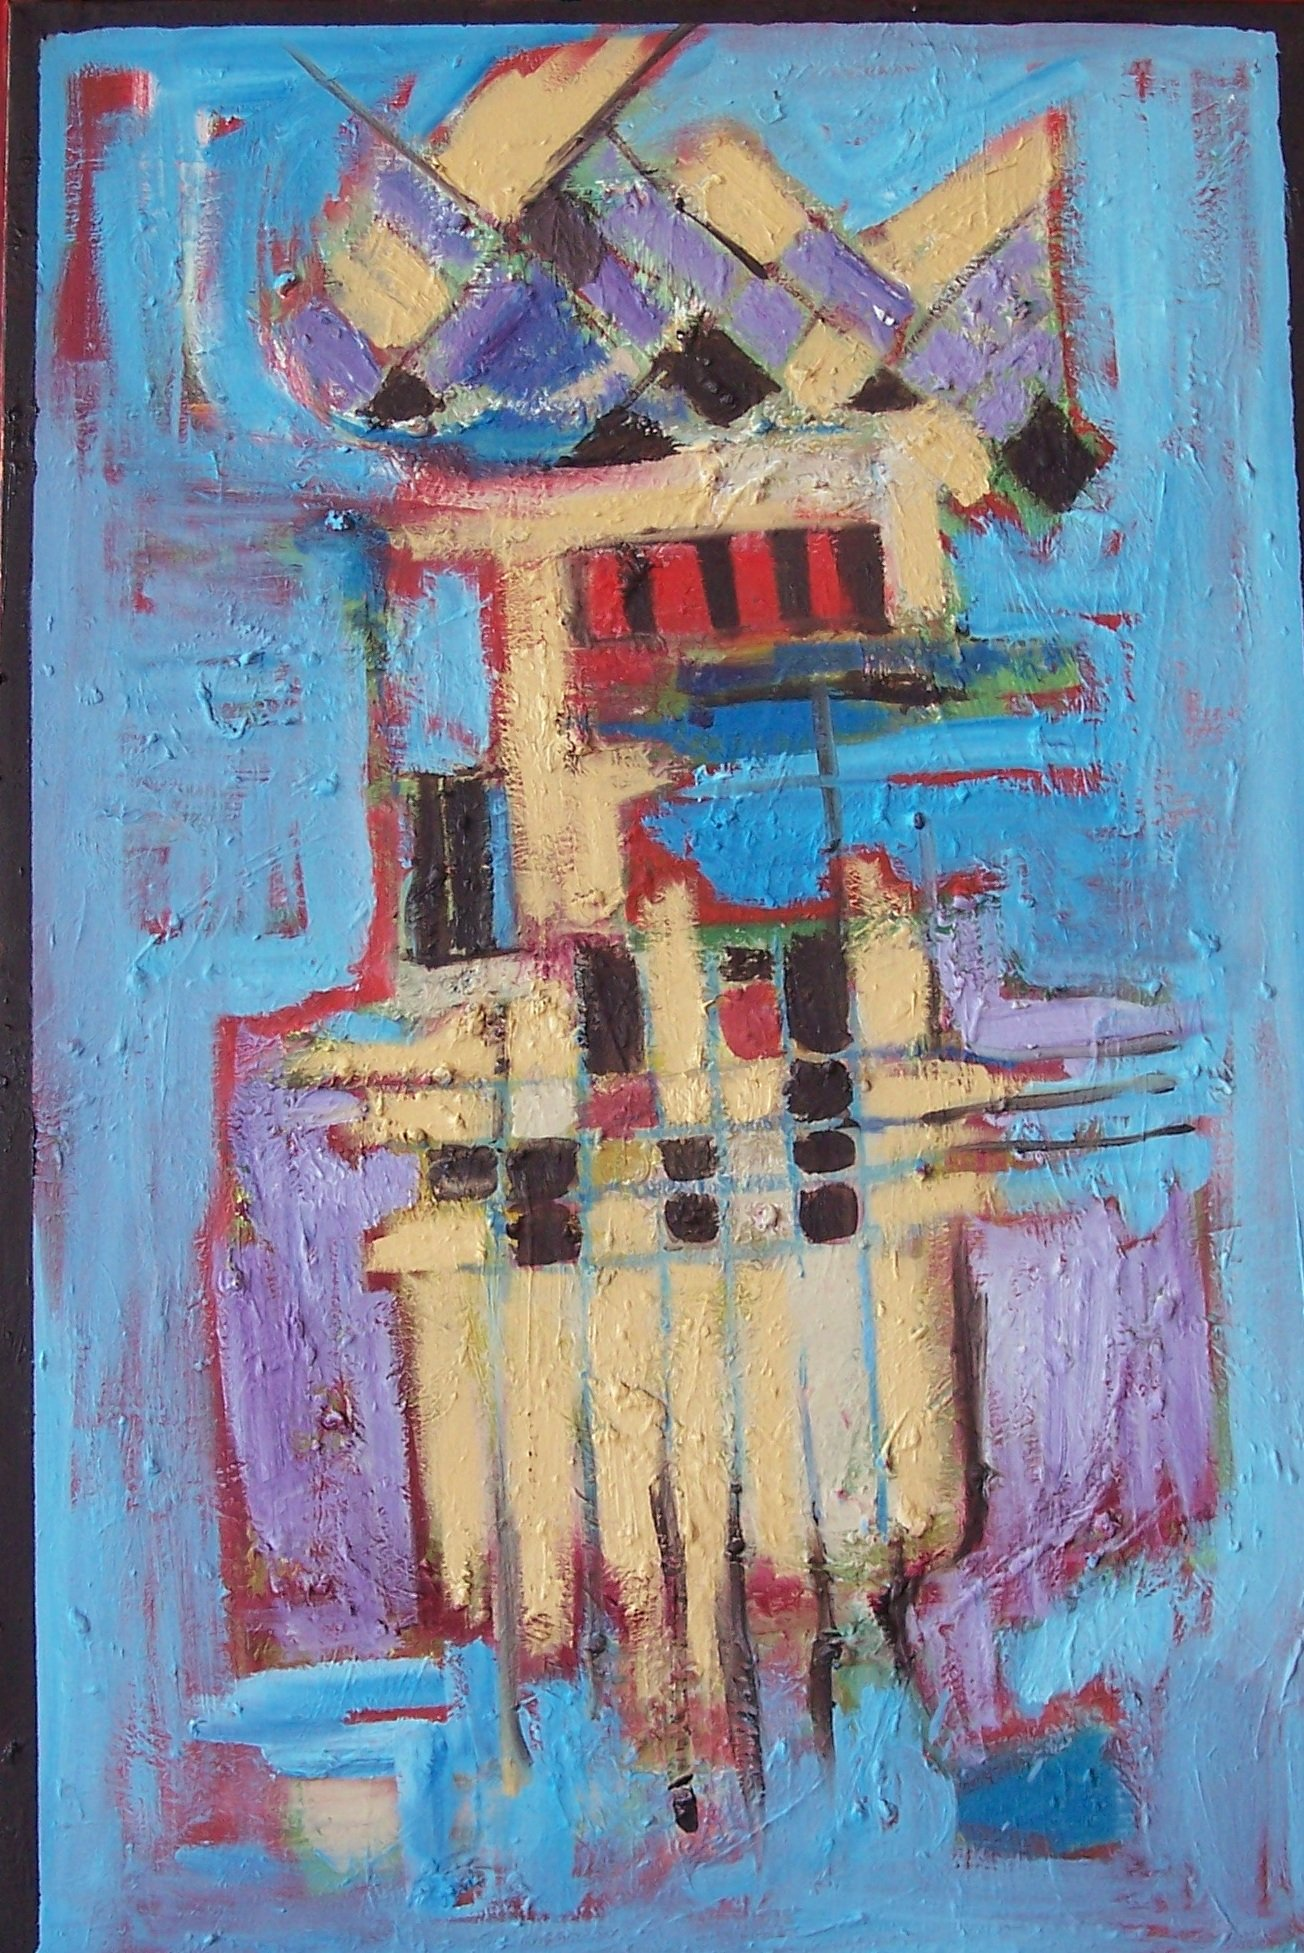 Abstract Blue, Red, Tan by Elisa Root (Oil Painting)